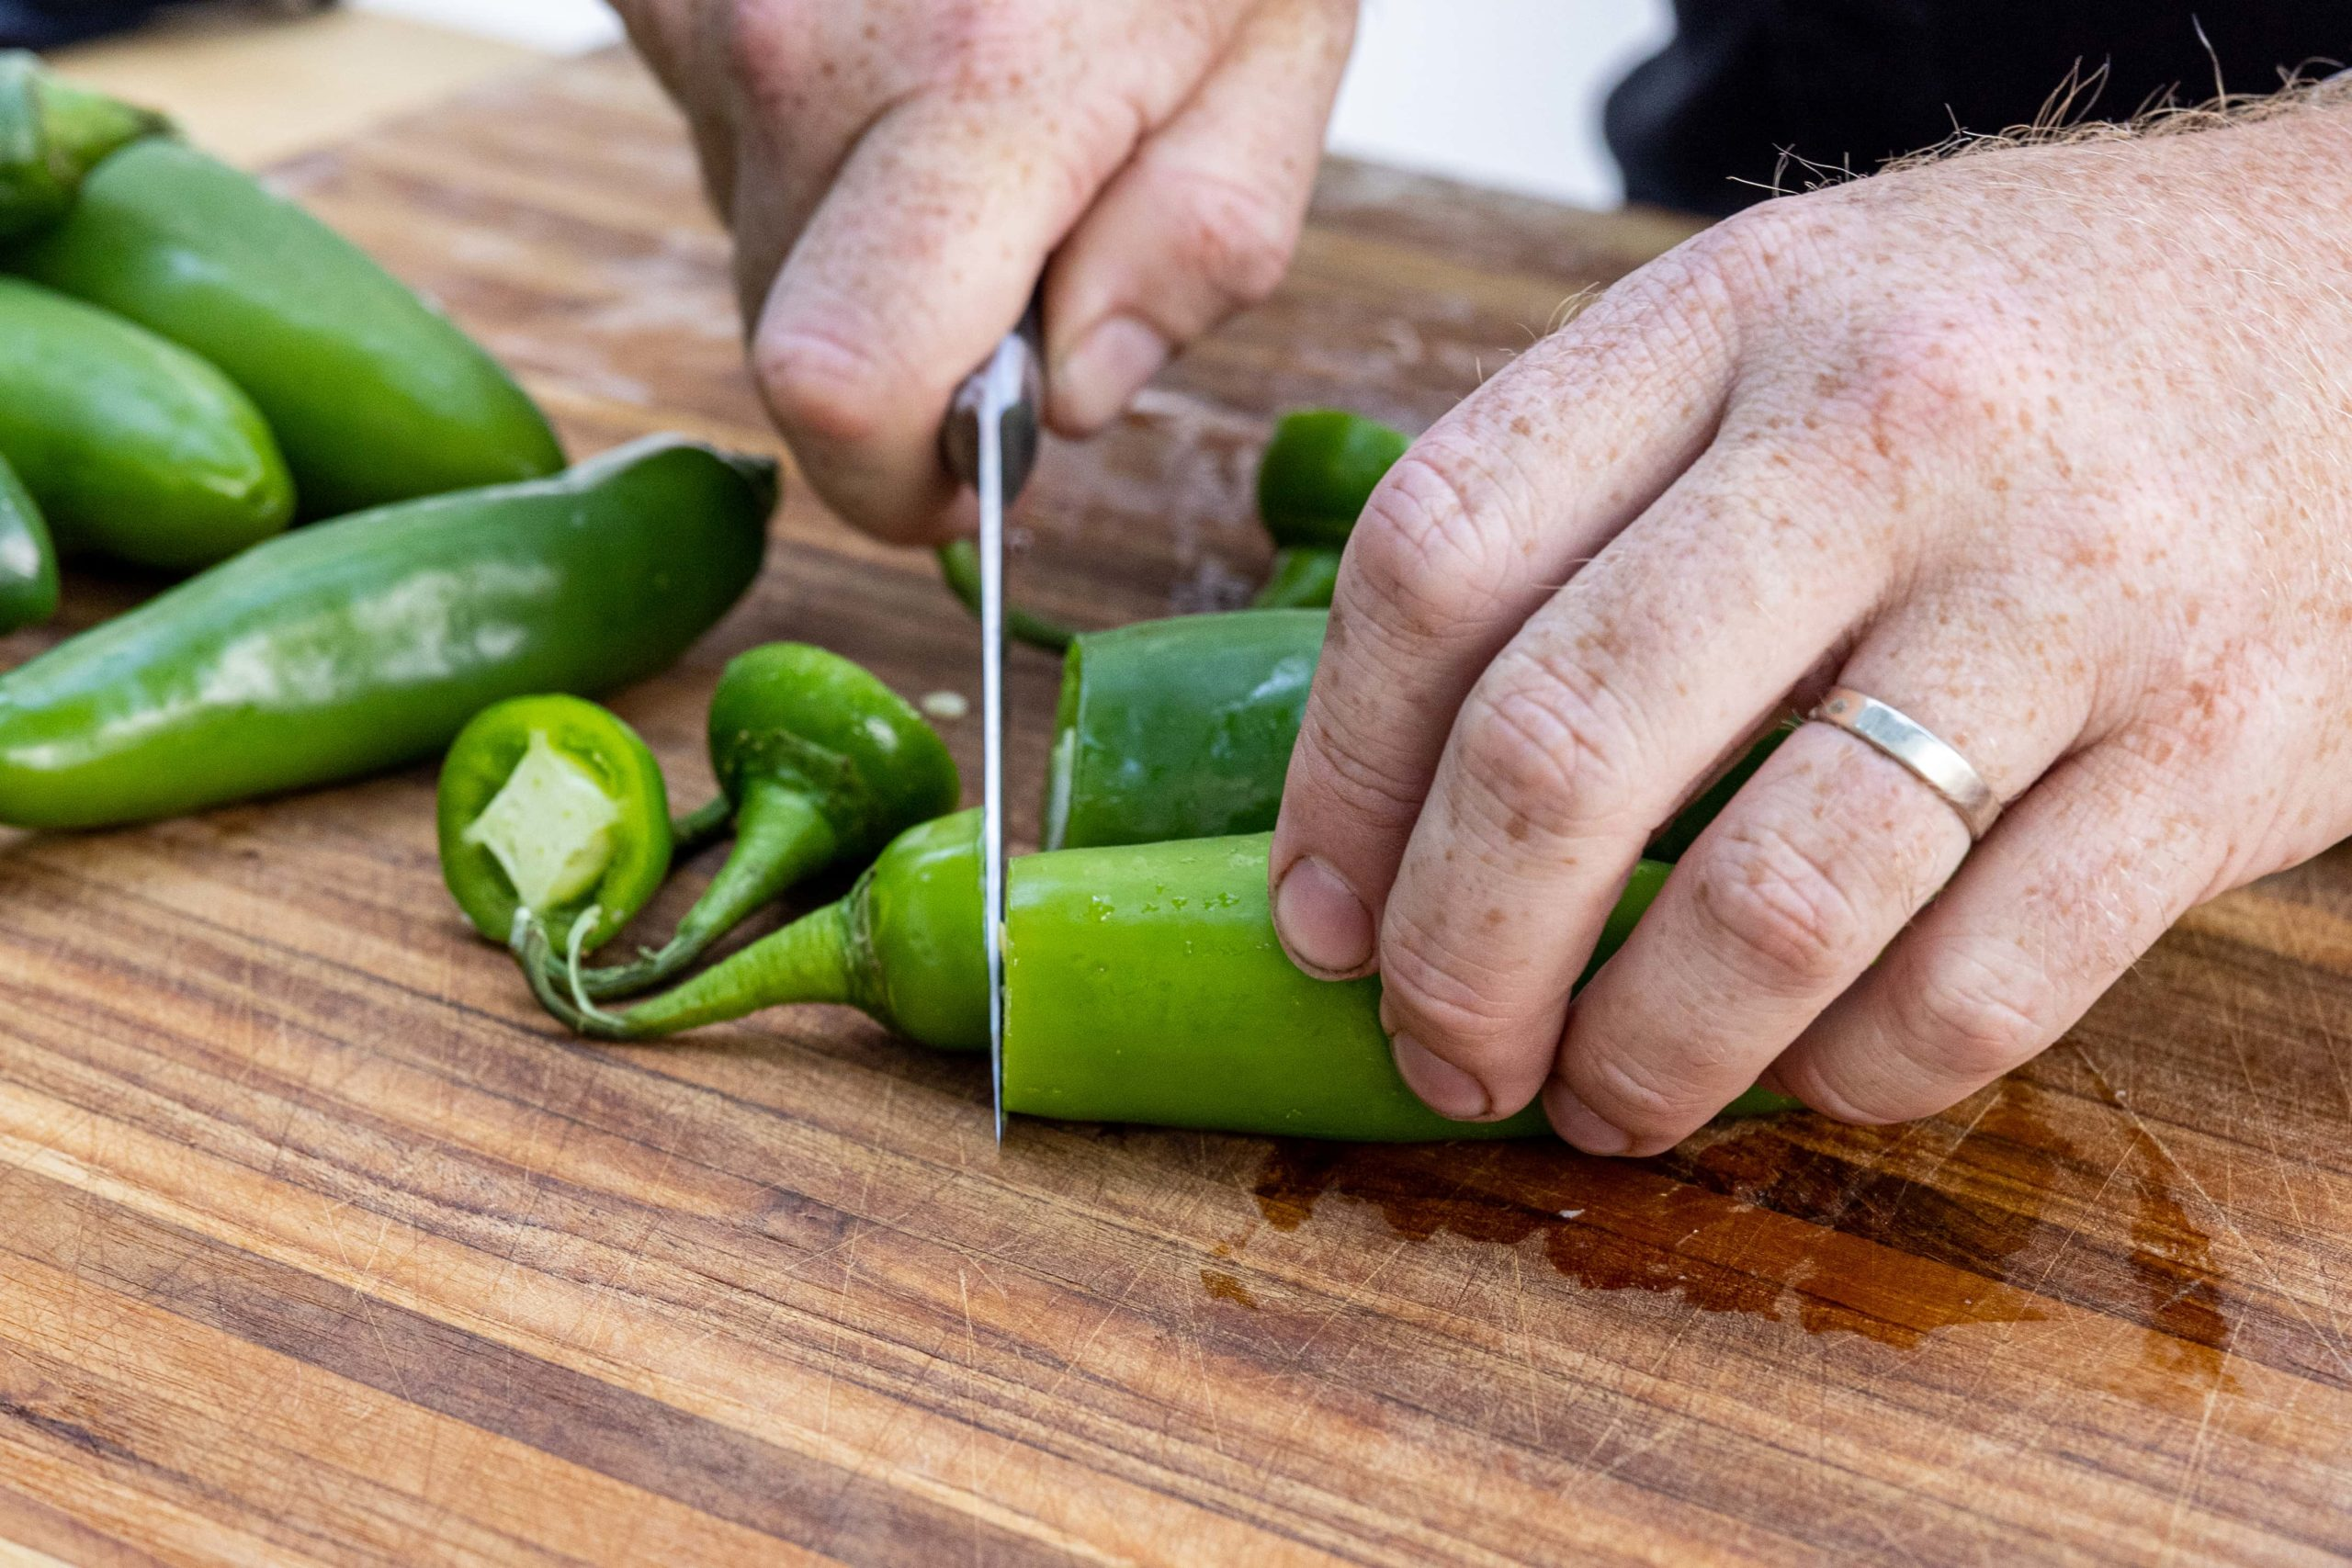 Cutting the tops from the peppers